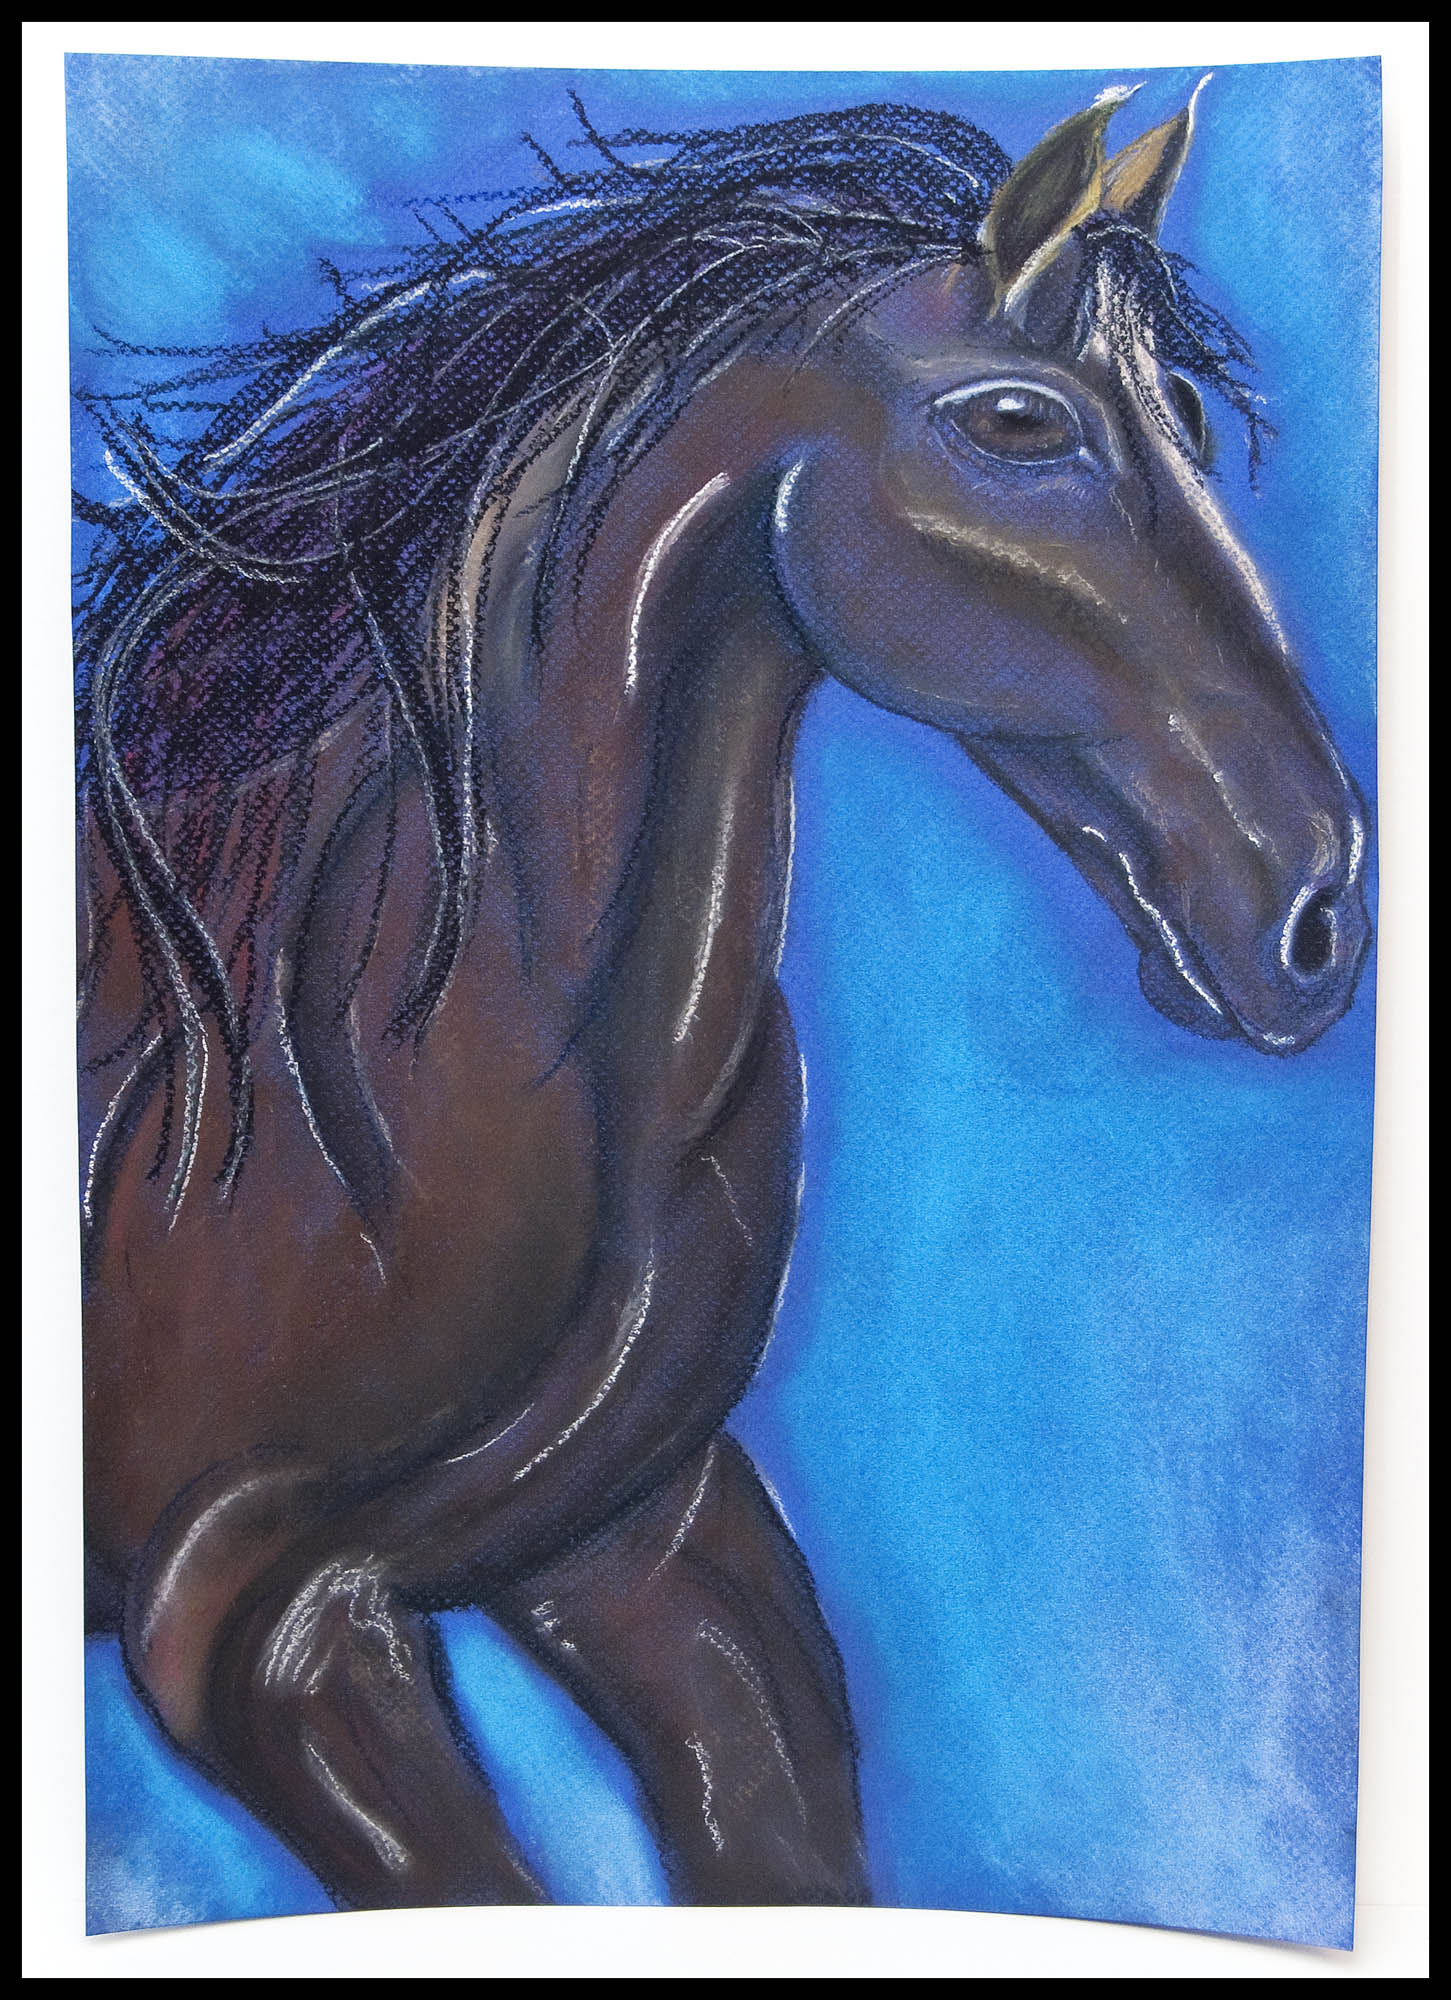 Scarlet's pastel painting of a horse